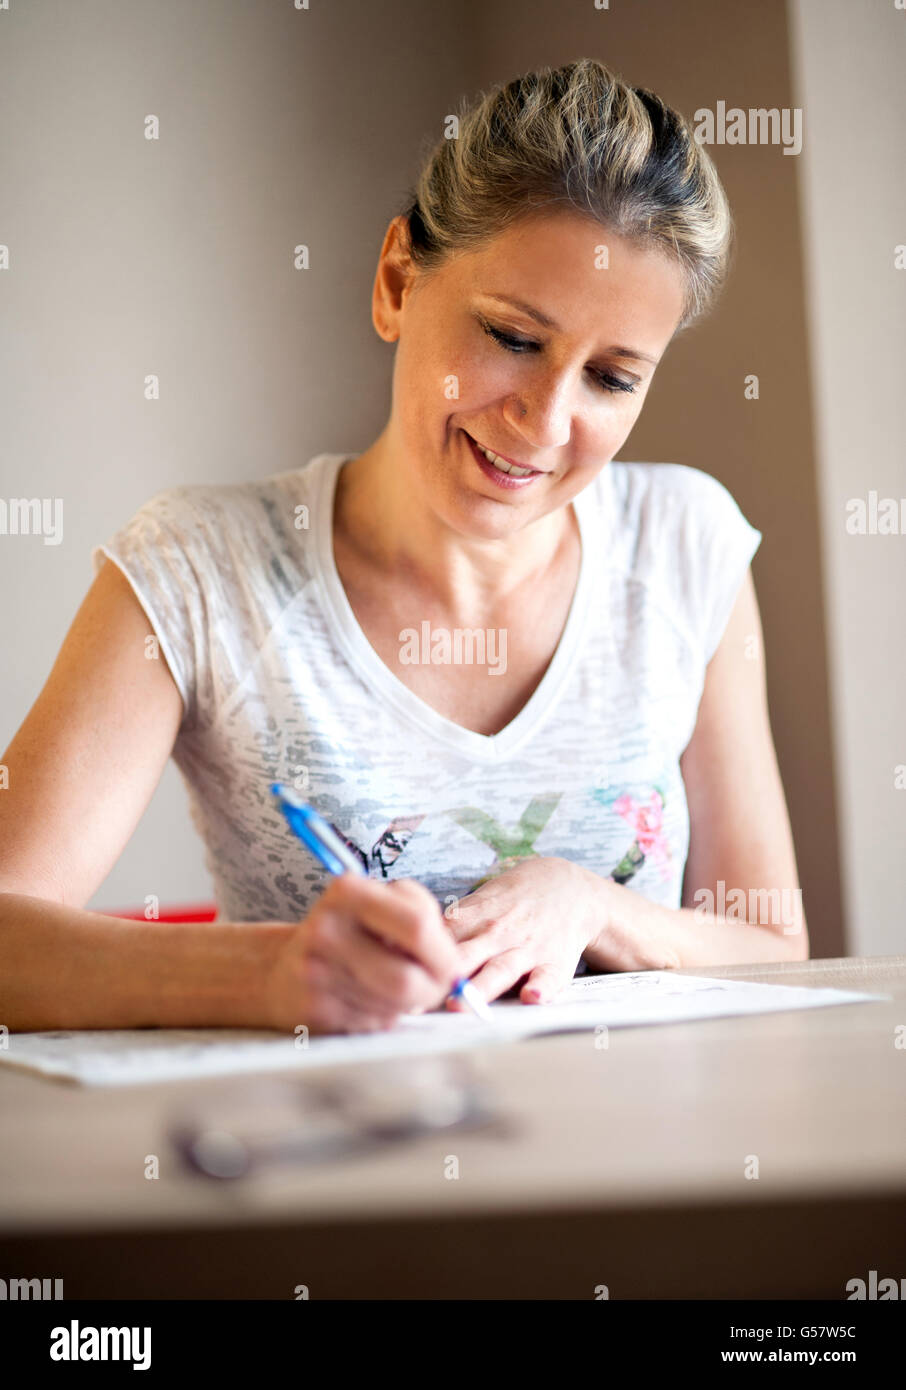 filling out form woman stock photos & filling out form woman stock